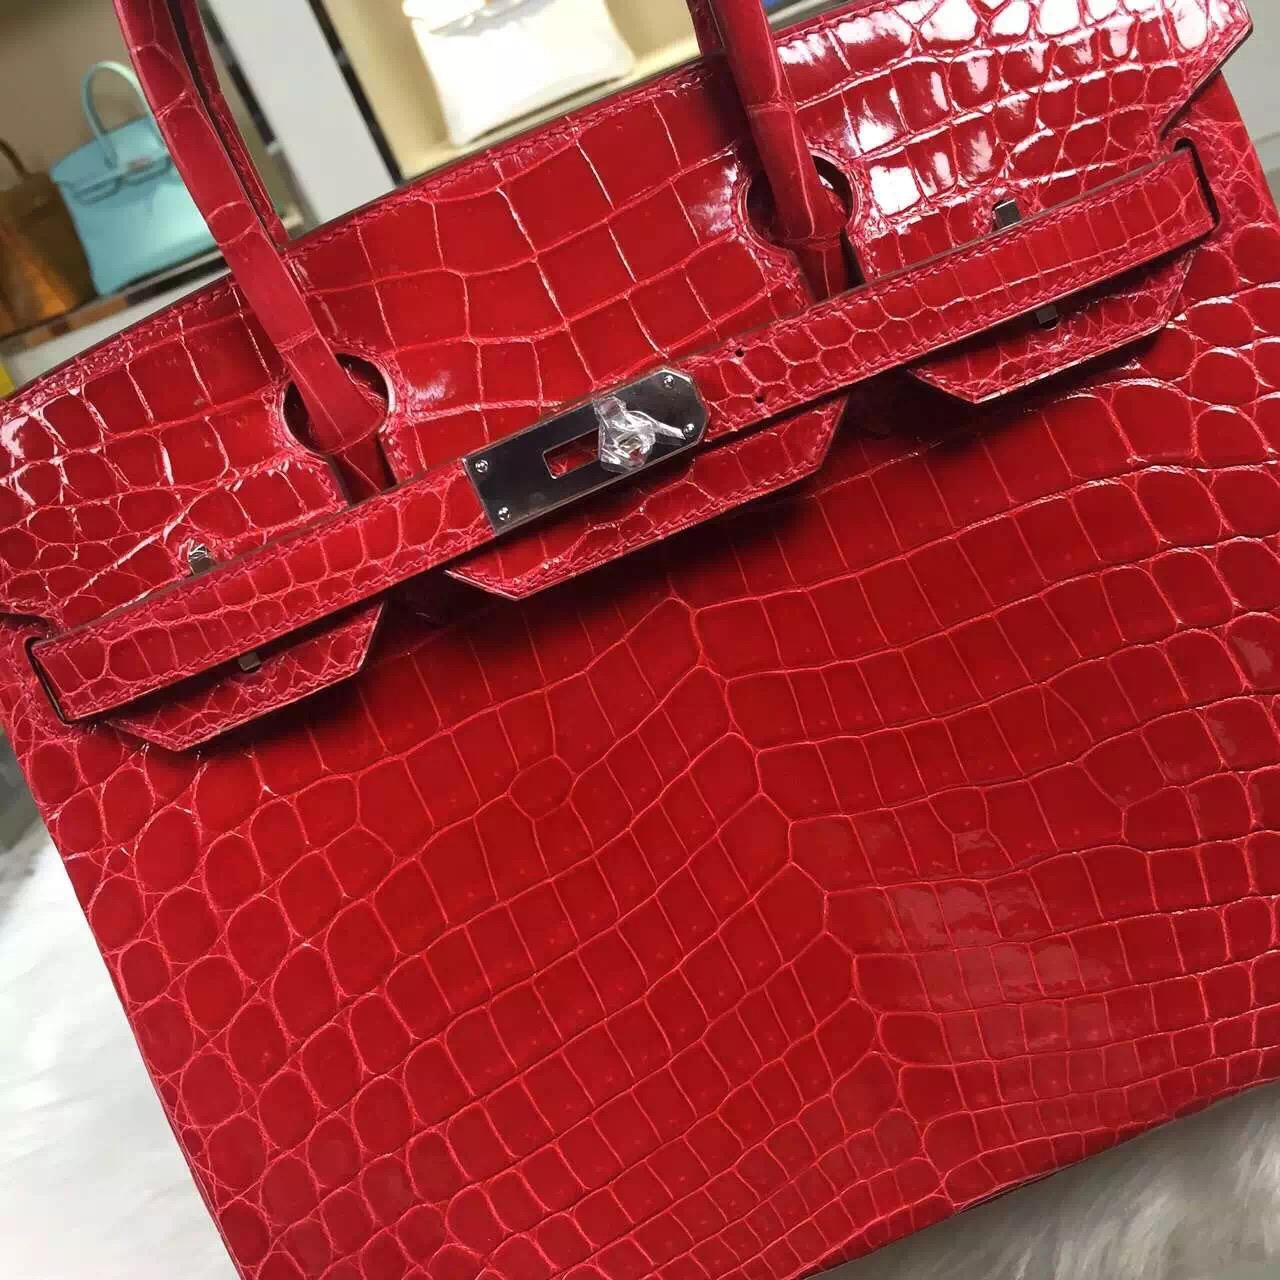 Hot Sale Hermes Ferrari Red Nicotious Crocodile Leather Birkin Bag 30CM Silver Hardware